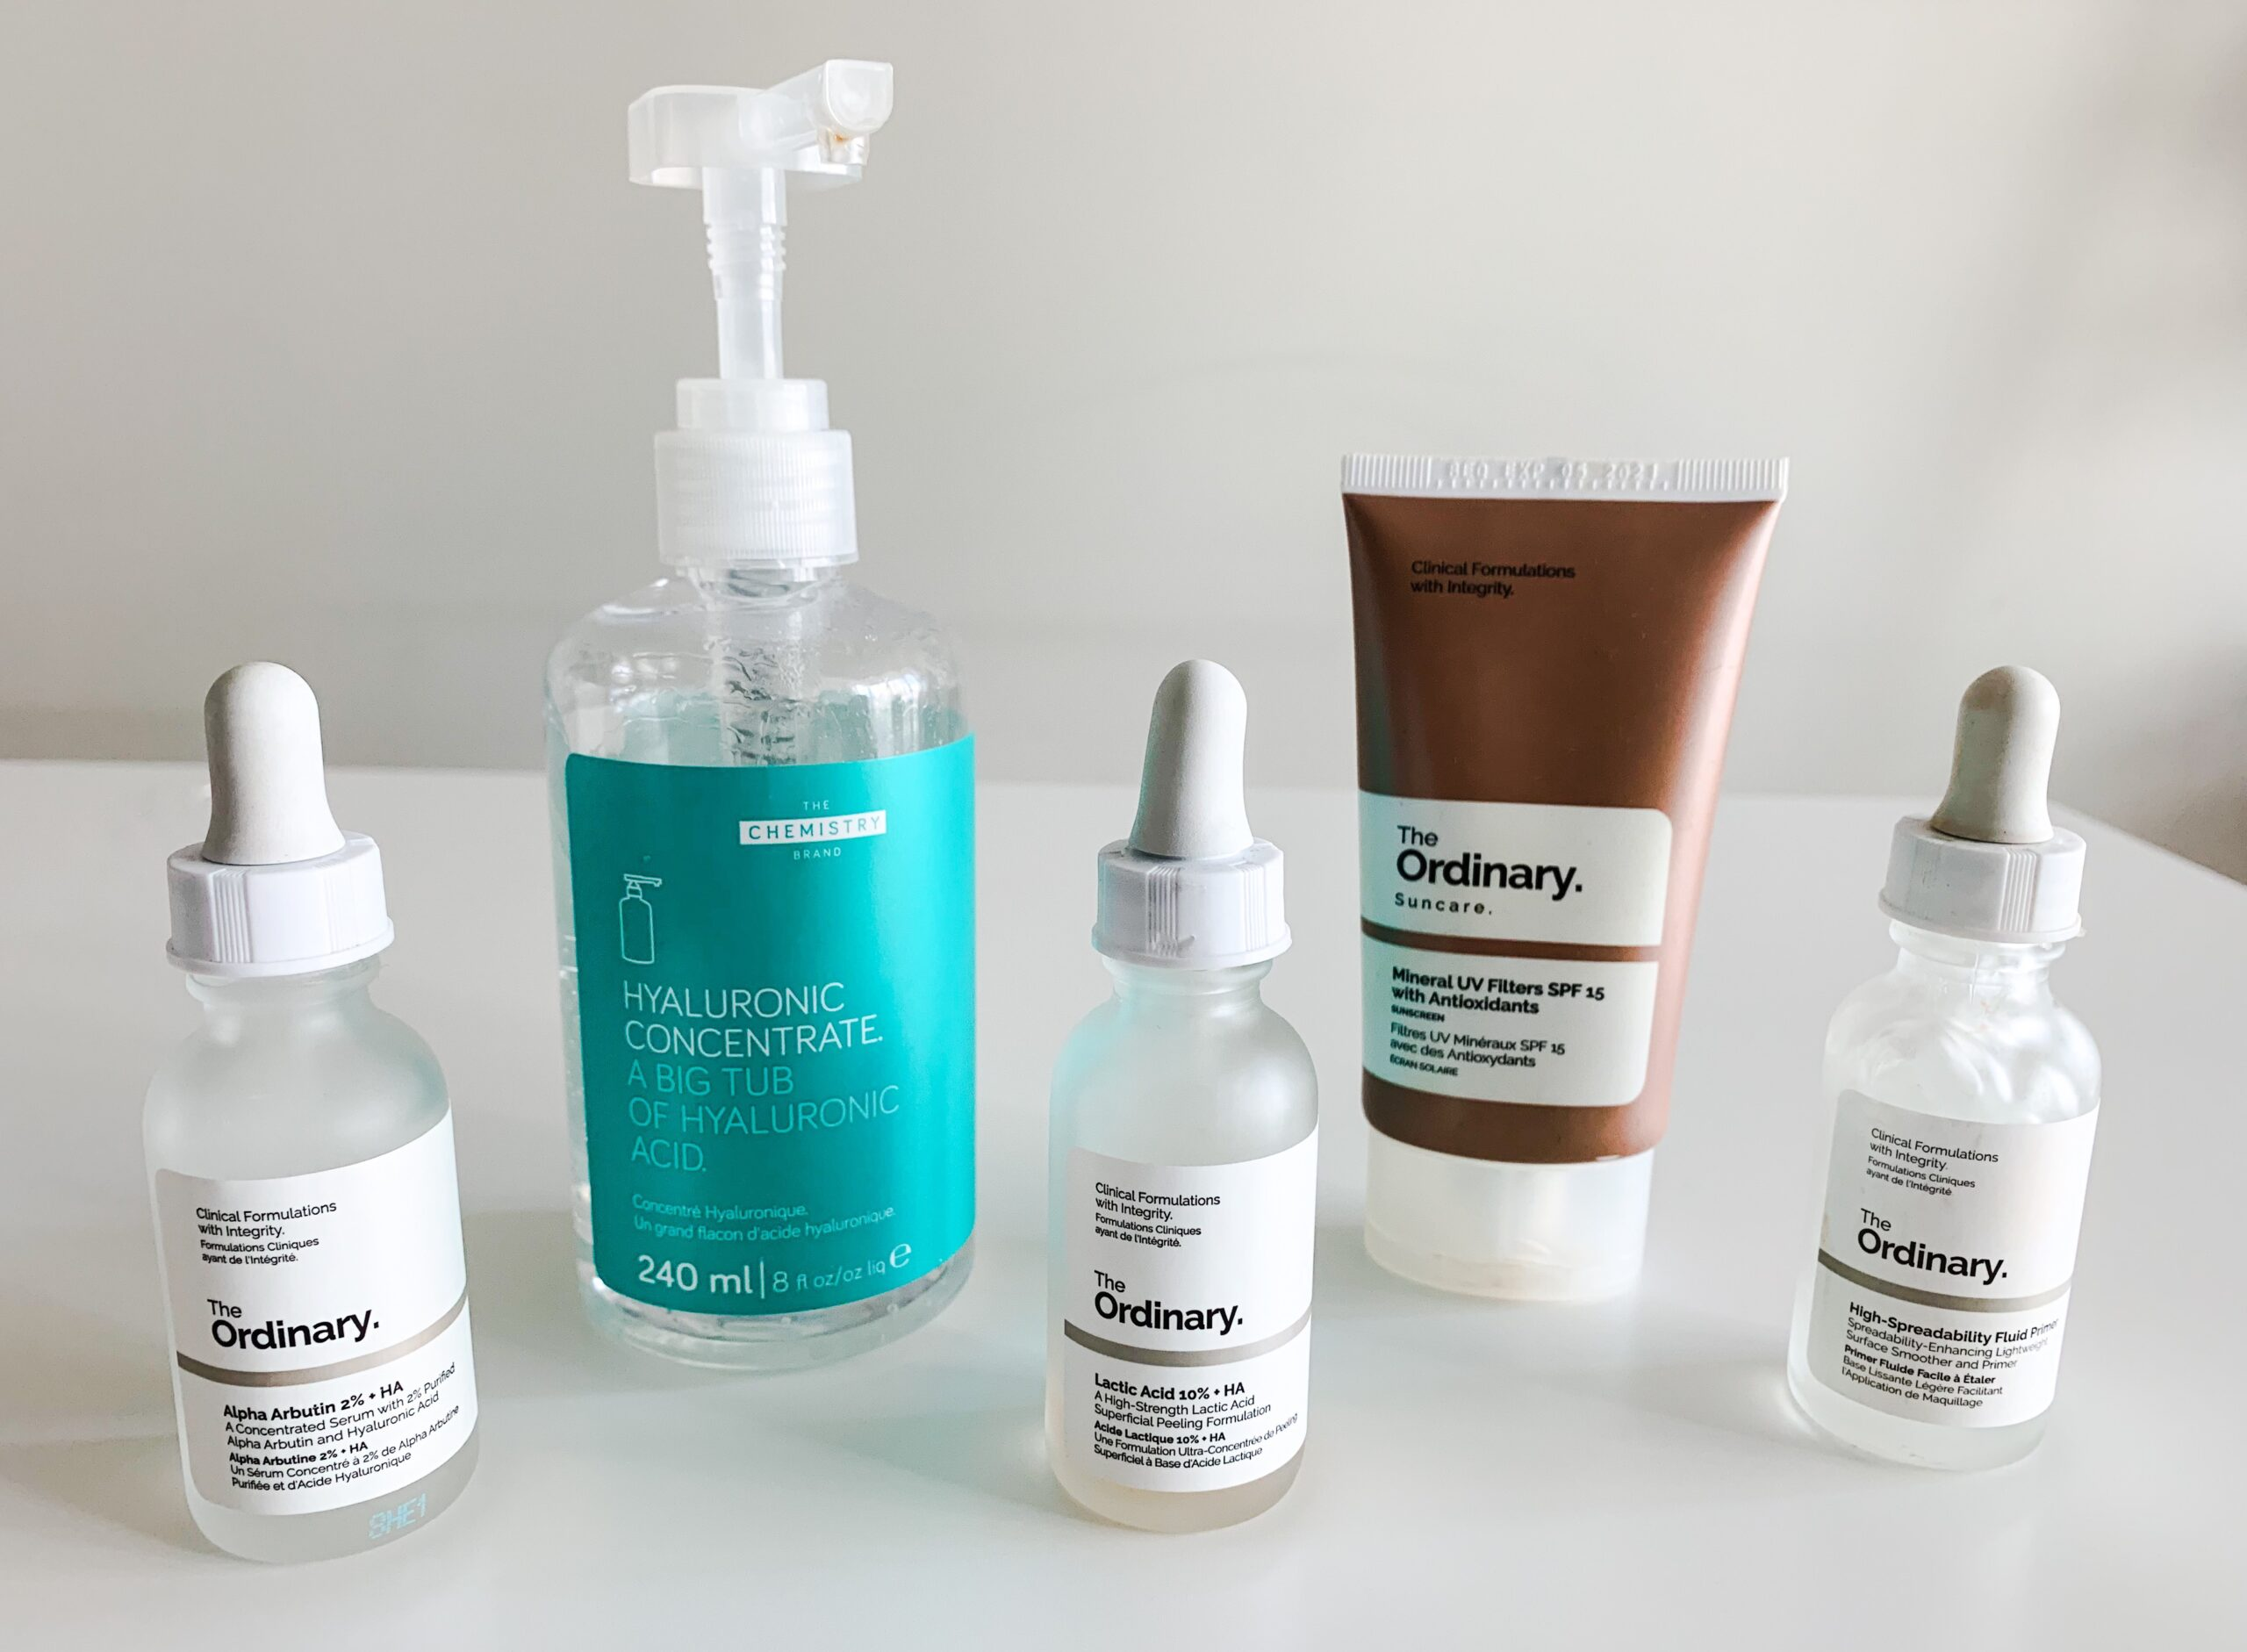 My love for Deciem products